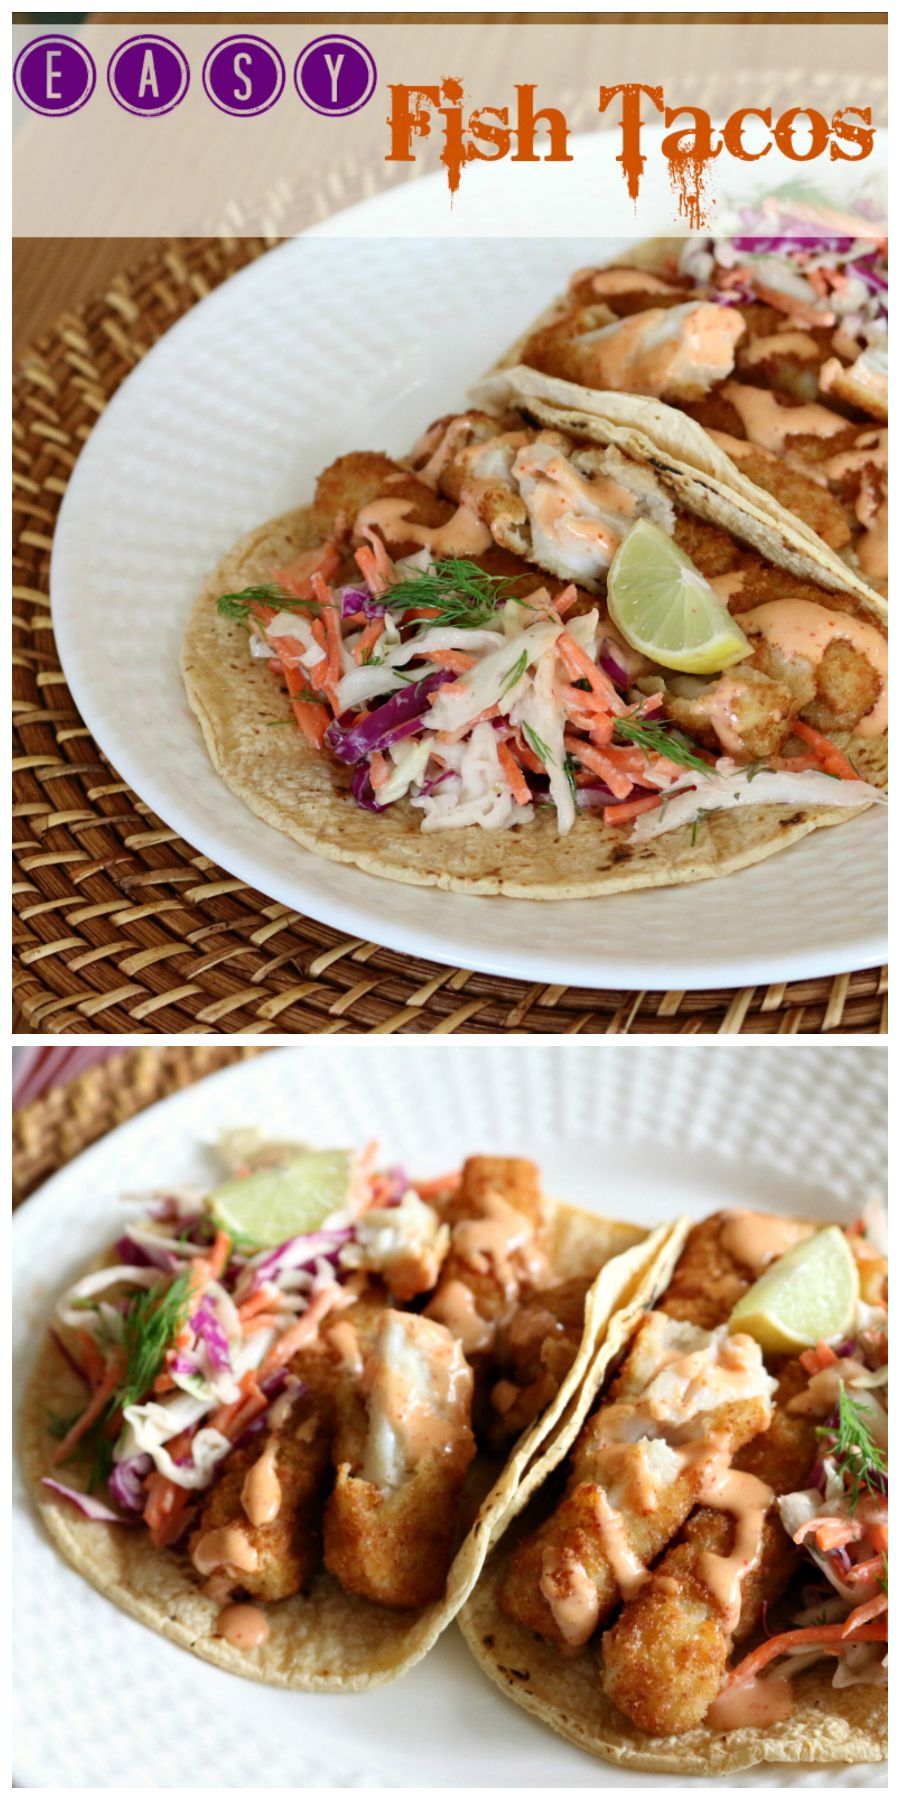 These fish tacos are delicious and perfect for Taco Tuesday!   Get the Recipe at CeceliasGoodStuff.com | Good Food for Good People